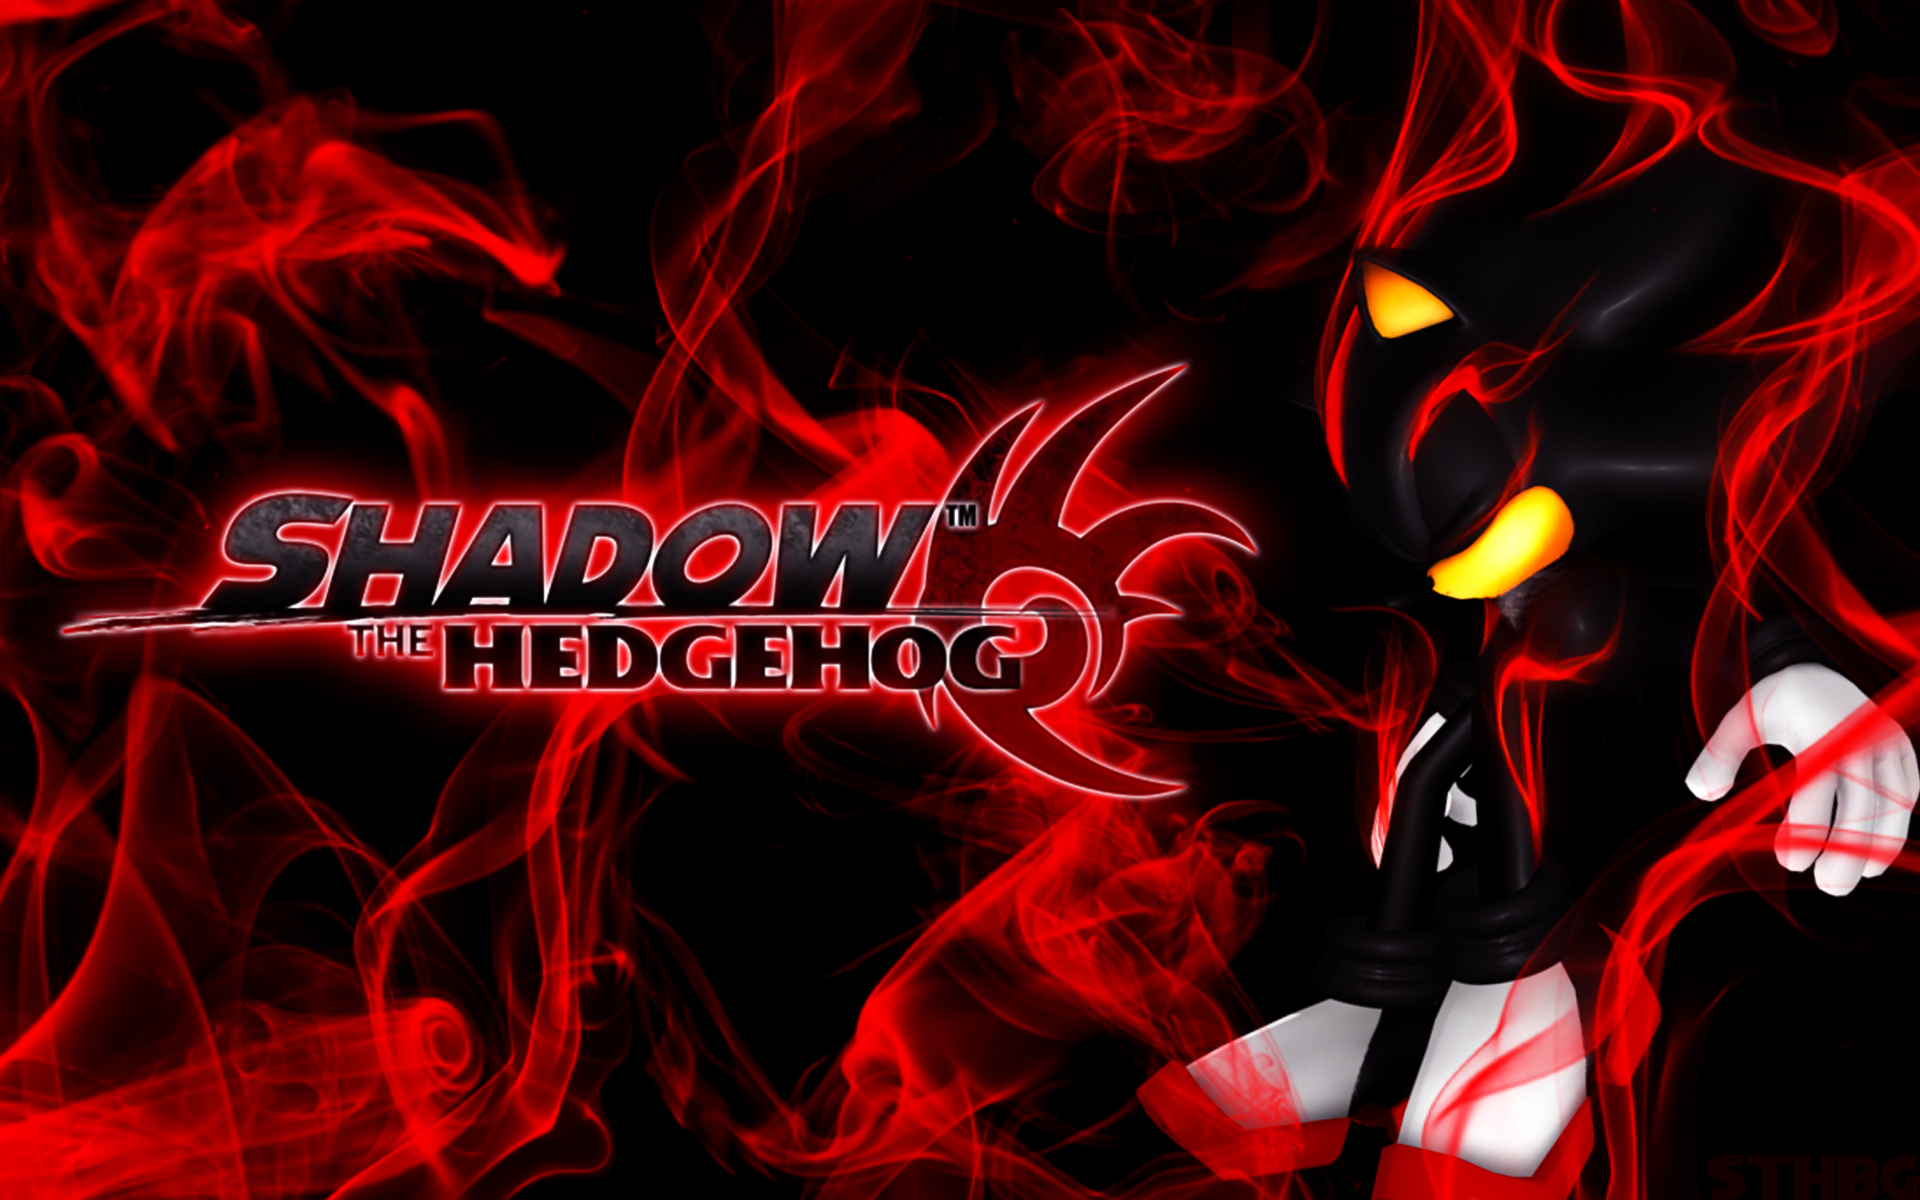 Shadow the hedgehog wallpaper by sonicthehedgehogbg on deviantart shadow the hedgehog wallpaper by sonicthehedgehogbg shadow the hedgehog wallpaper by sonicthehedgehogbg voltagebd Choice Image